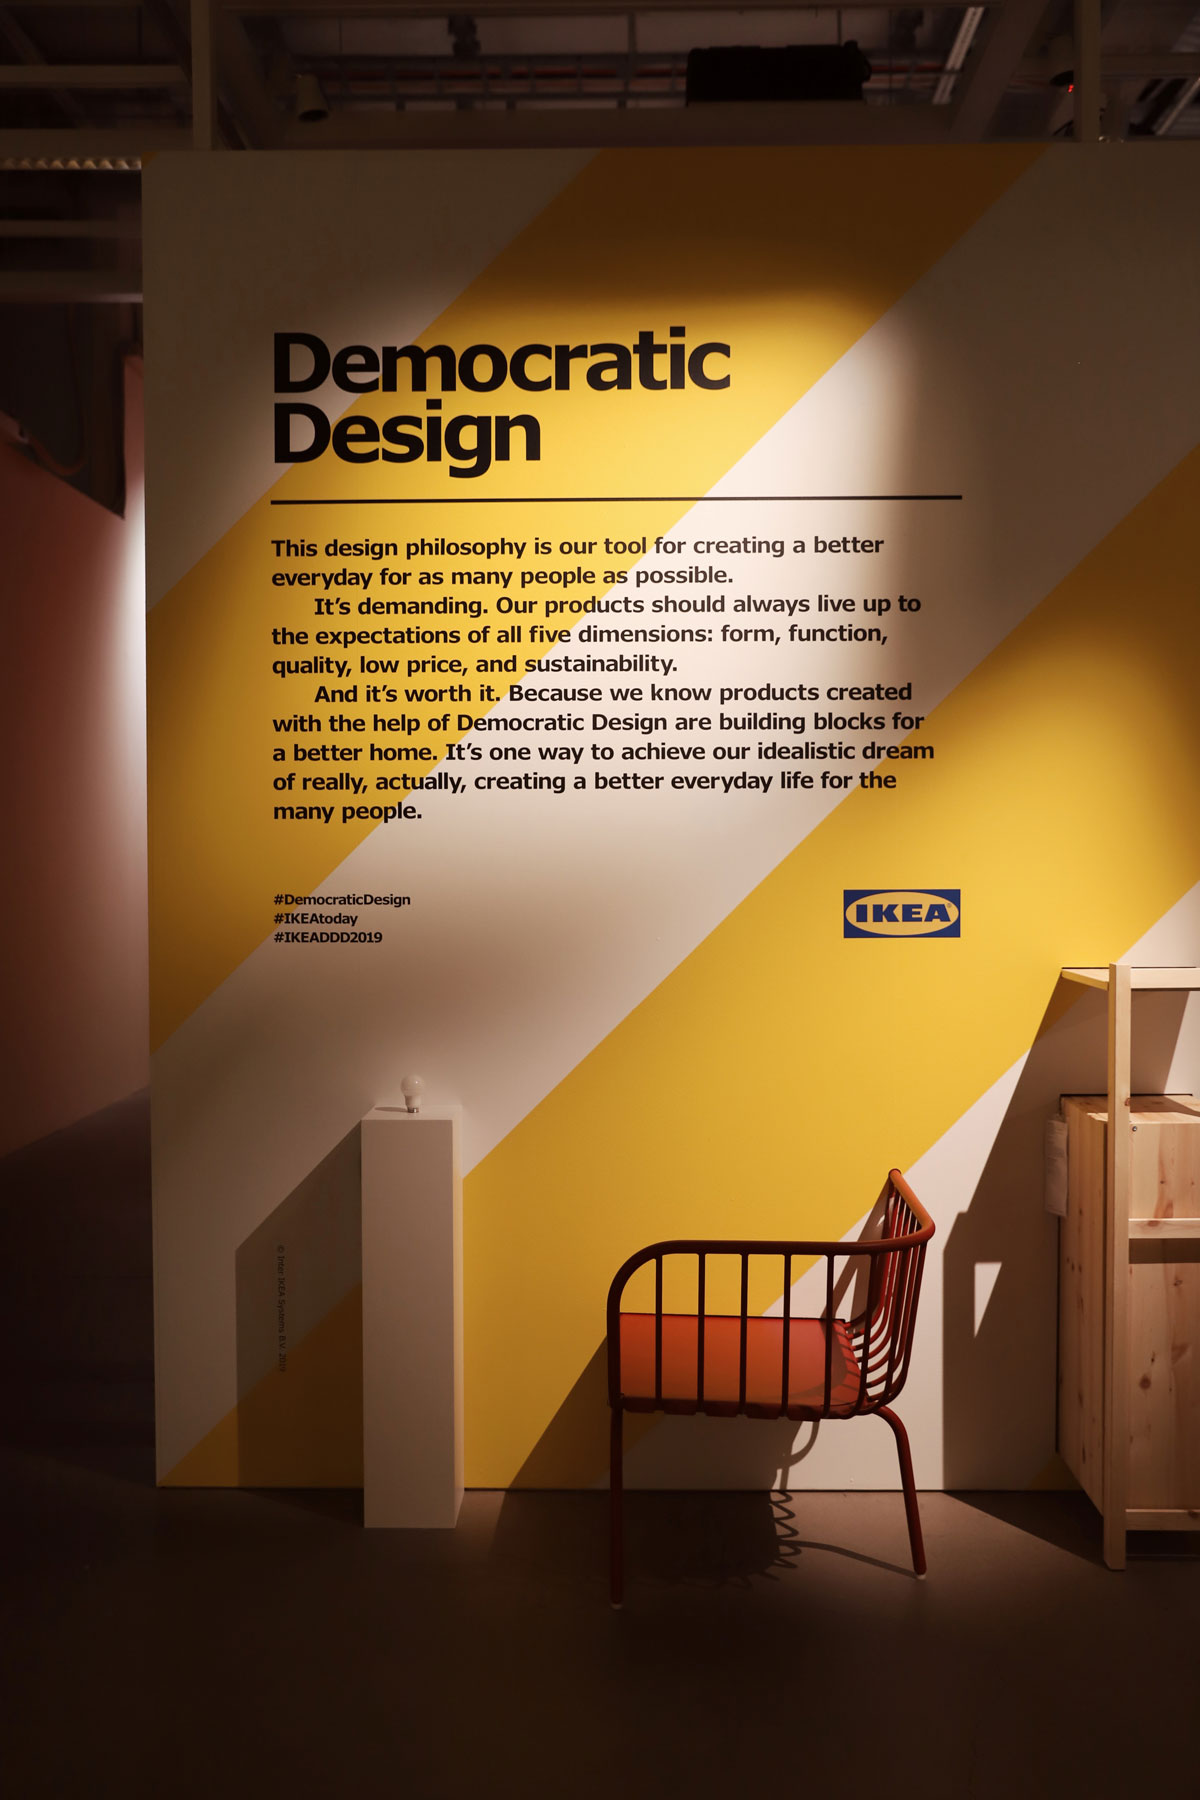 IKEA Democratic Design Days 2019, Rockpaperdresses, Cathrine Widunok Wichmand, Älmhult